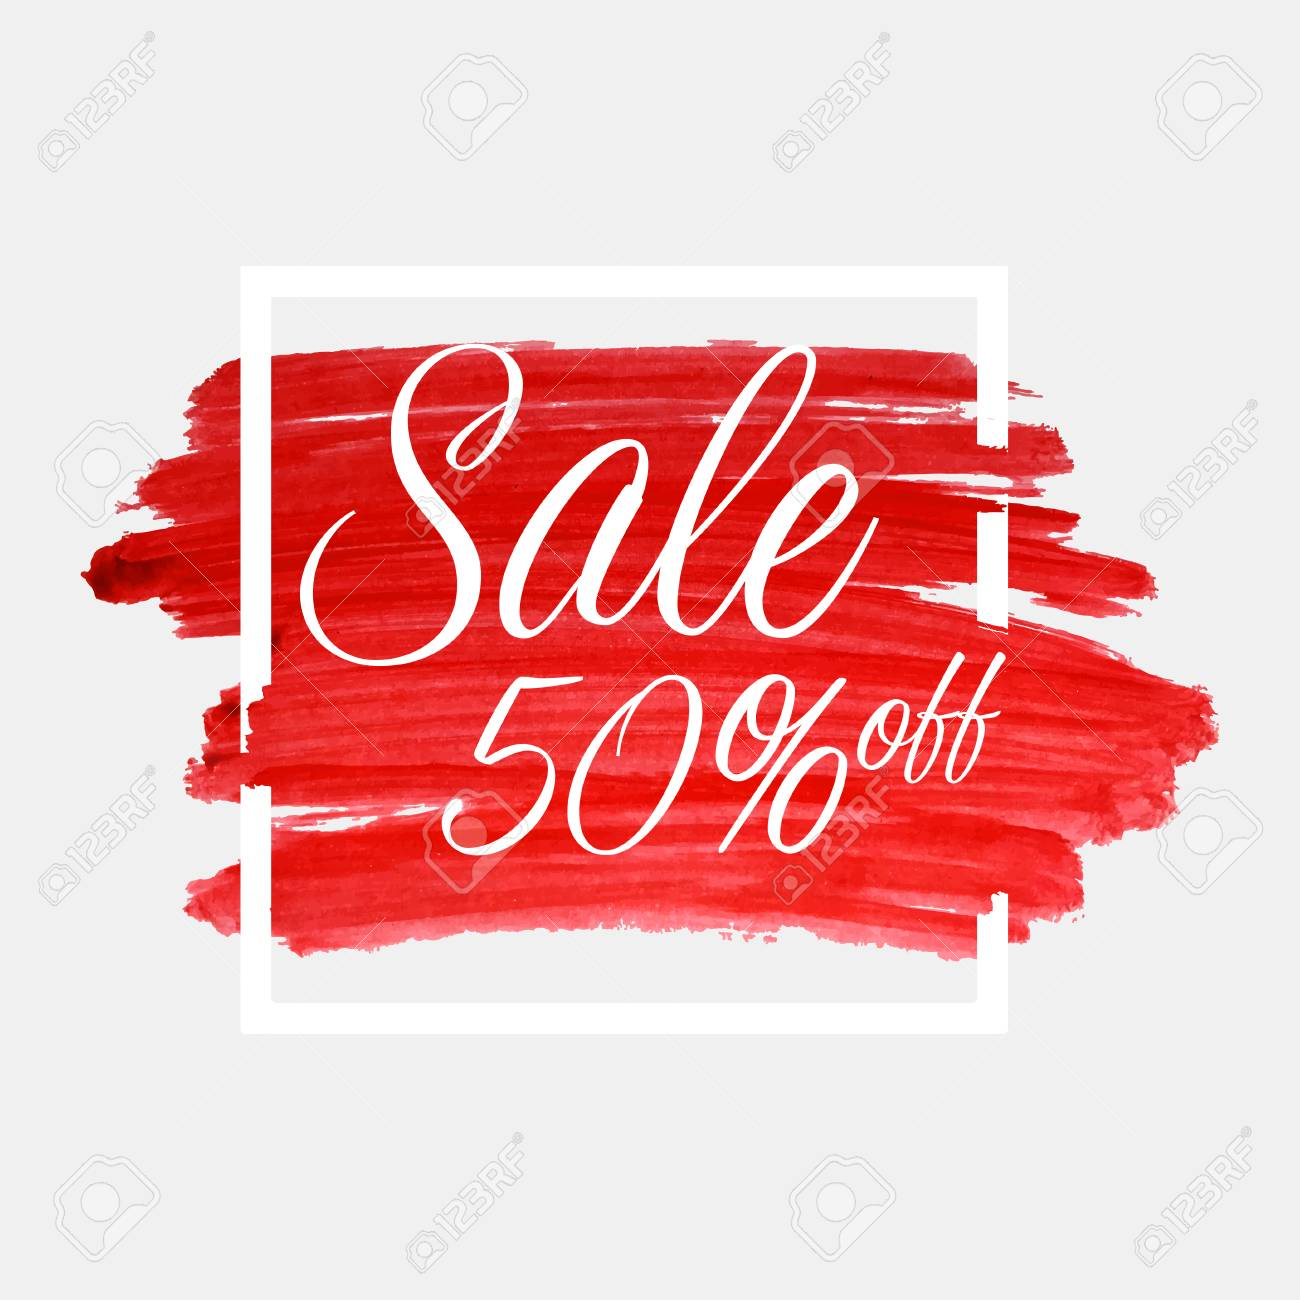 Sale, 50 percent off lettering on watercolor stroke with white frame. Red grunge abstract background brush paint texture. Vector - 78796427